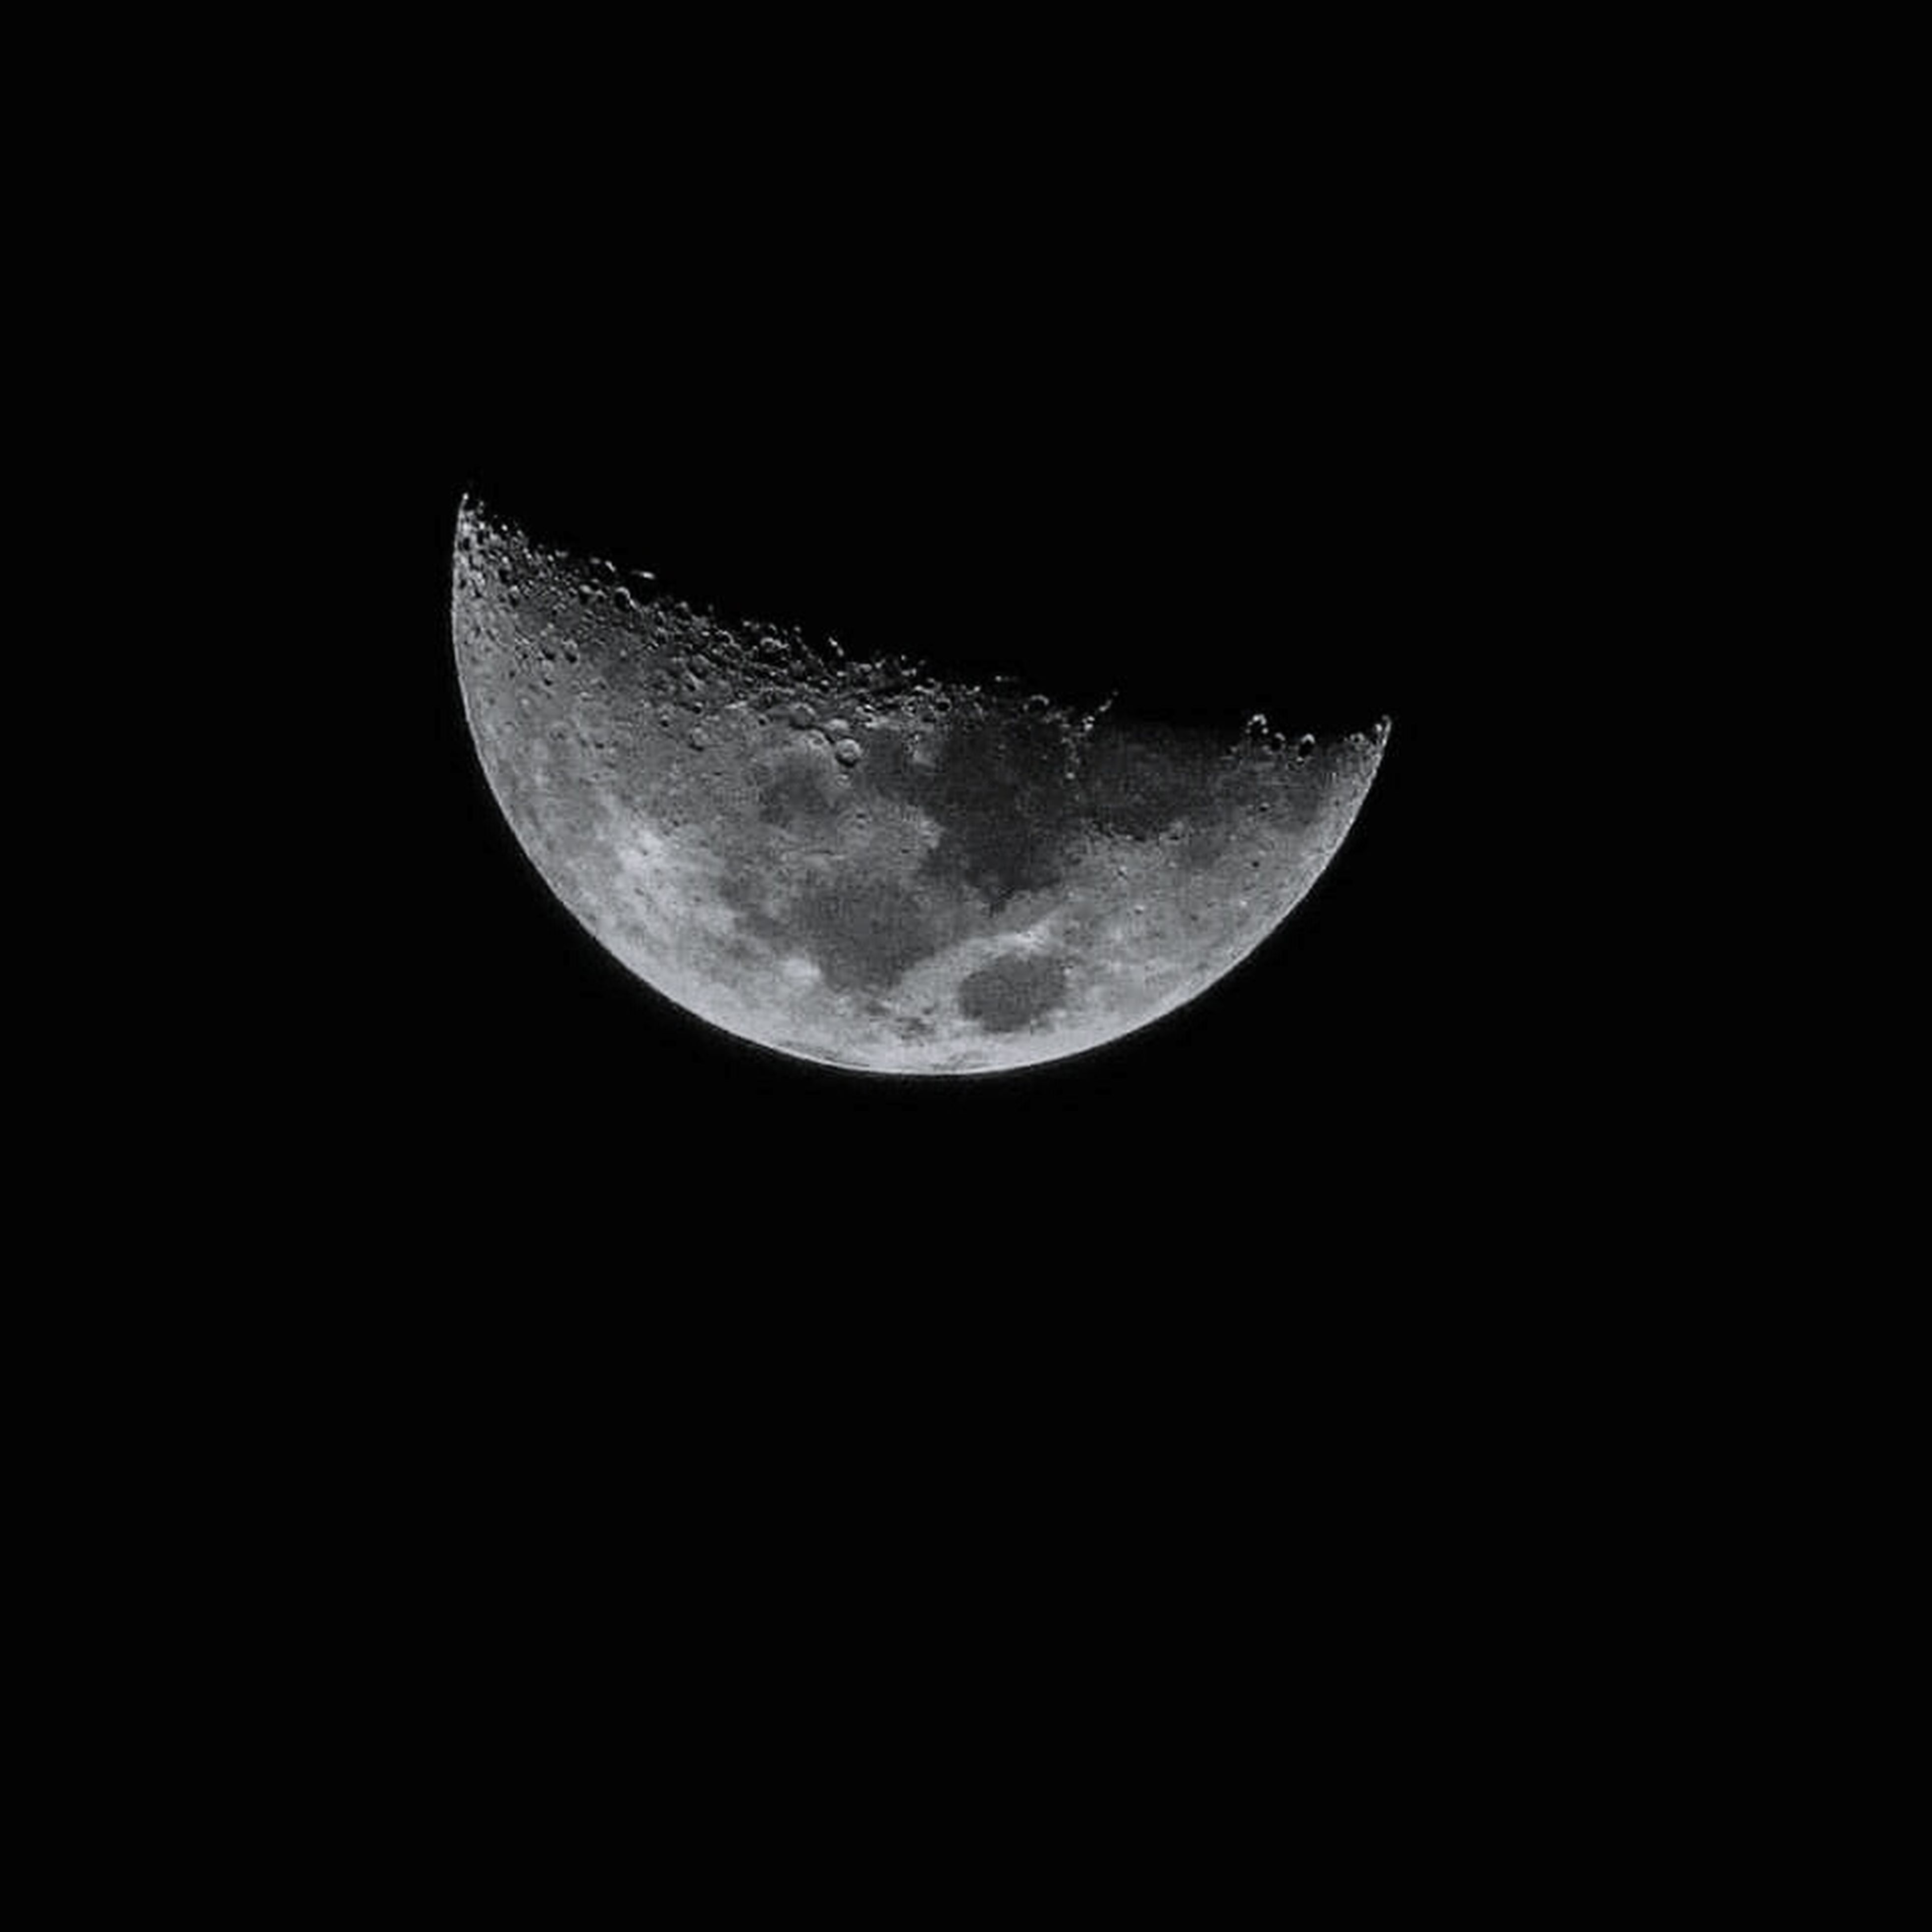 moon, night, astronomy, moon surface, beauty in nature, planetary moon, nature, majestic, scenics, low angle view, tranquility, tranquil scene, half moon, space, idyllic, sky, outdoors, discovery, space exploration, clear sky, no people, crescent, close-up